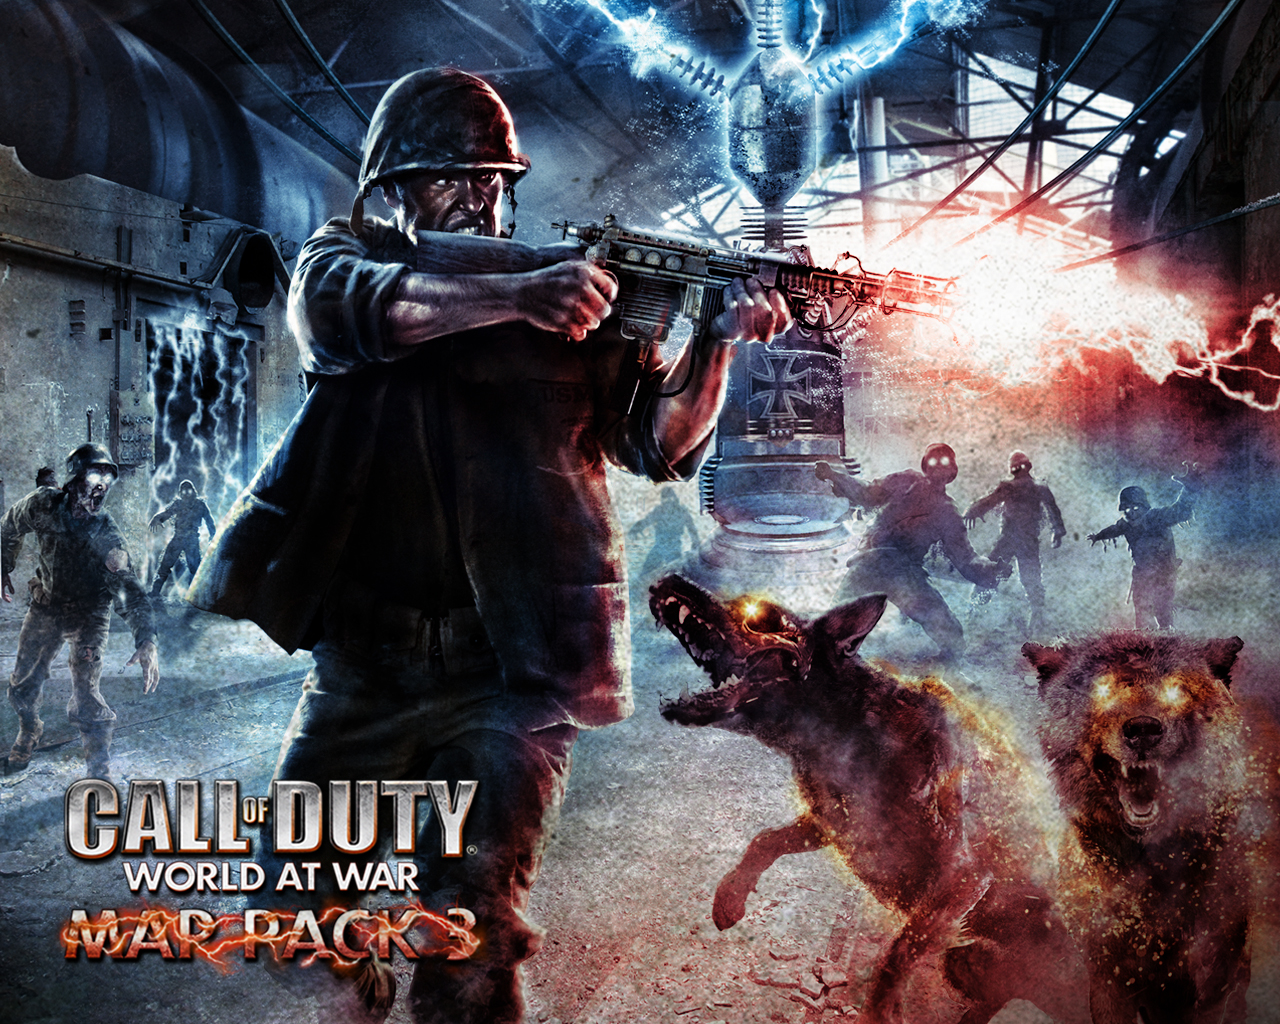 At the time Call Of Duty was routed in historical authenticity. They made Zombies a out of the way experience that only the most committed players would get ...